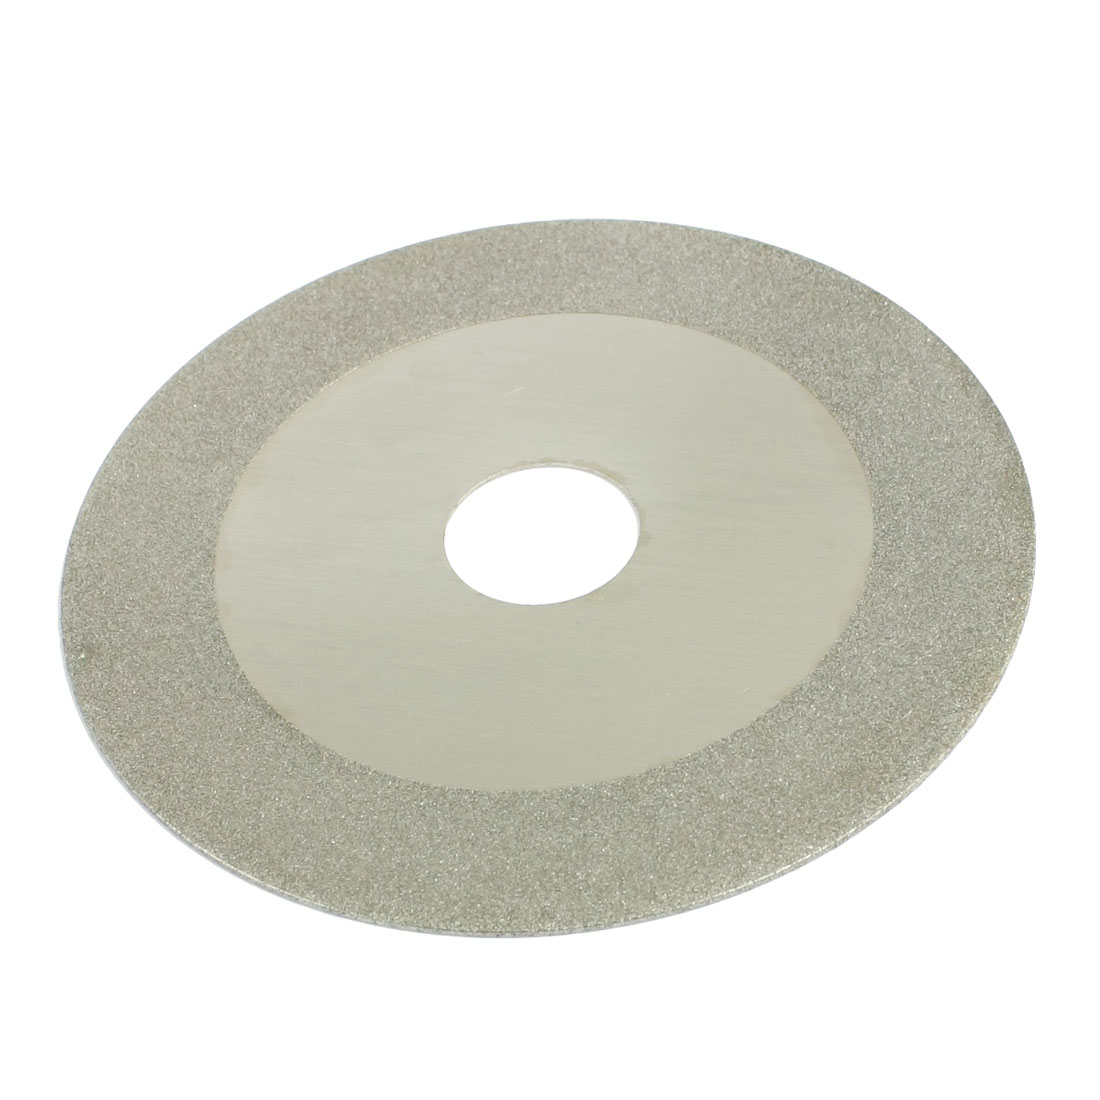 100mm x 20mm x 1mm Double Side Glass Diamond Saw Cutter Cutting Disc